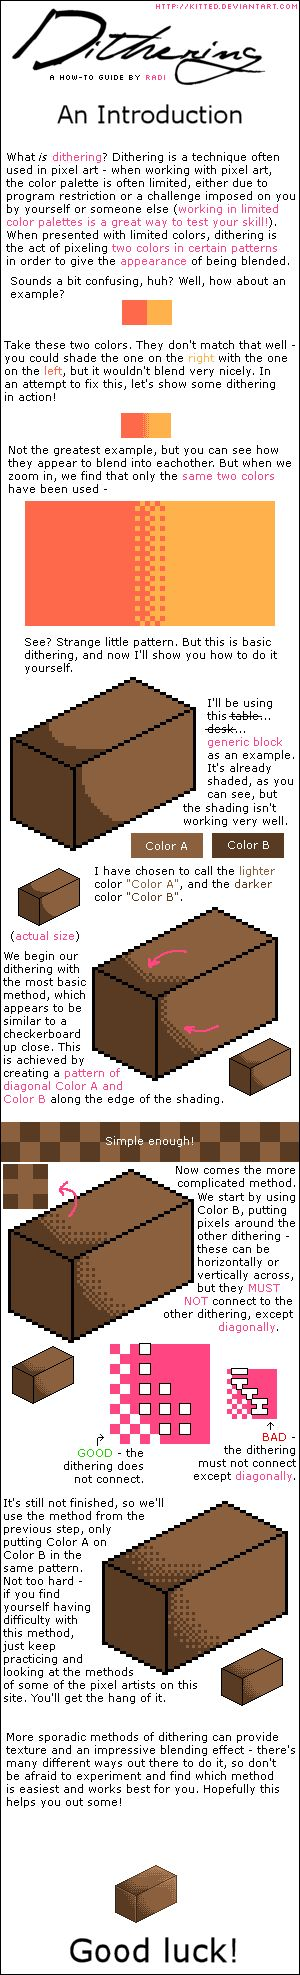 DITHERING TUTORIAL - Basics by kitted.deviantart.com on @deviantART